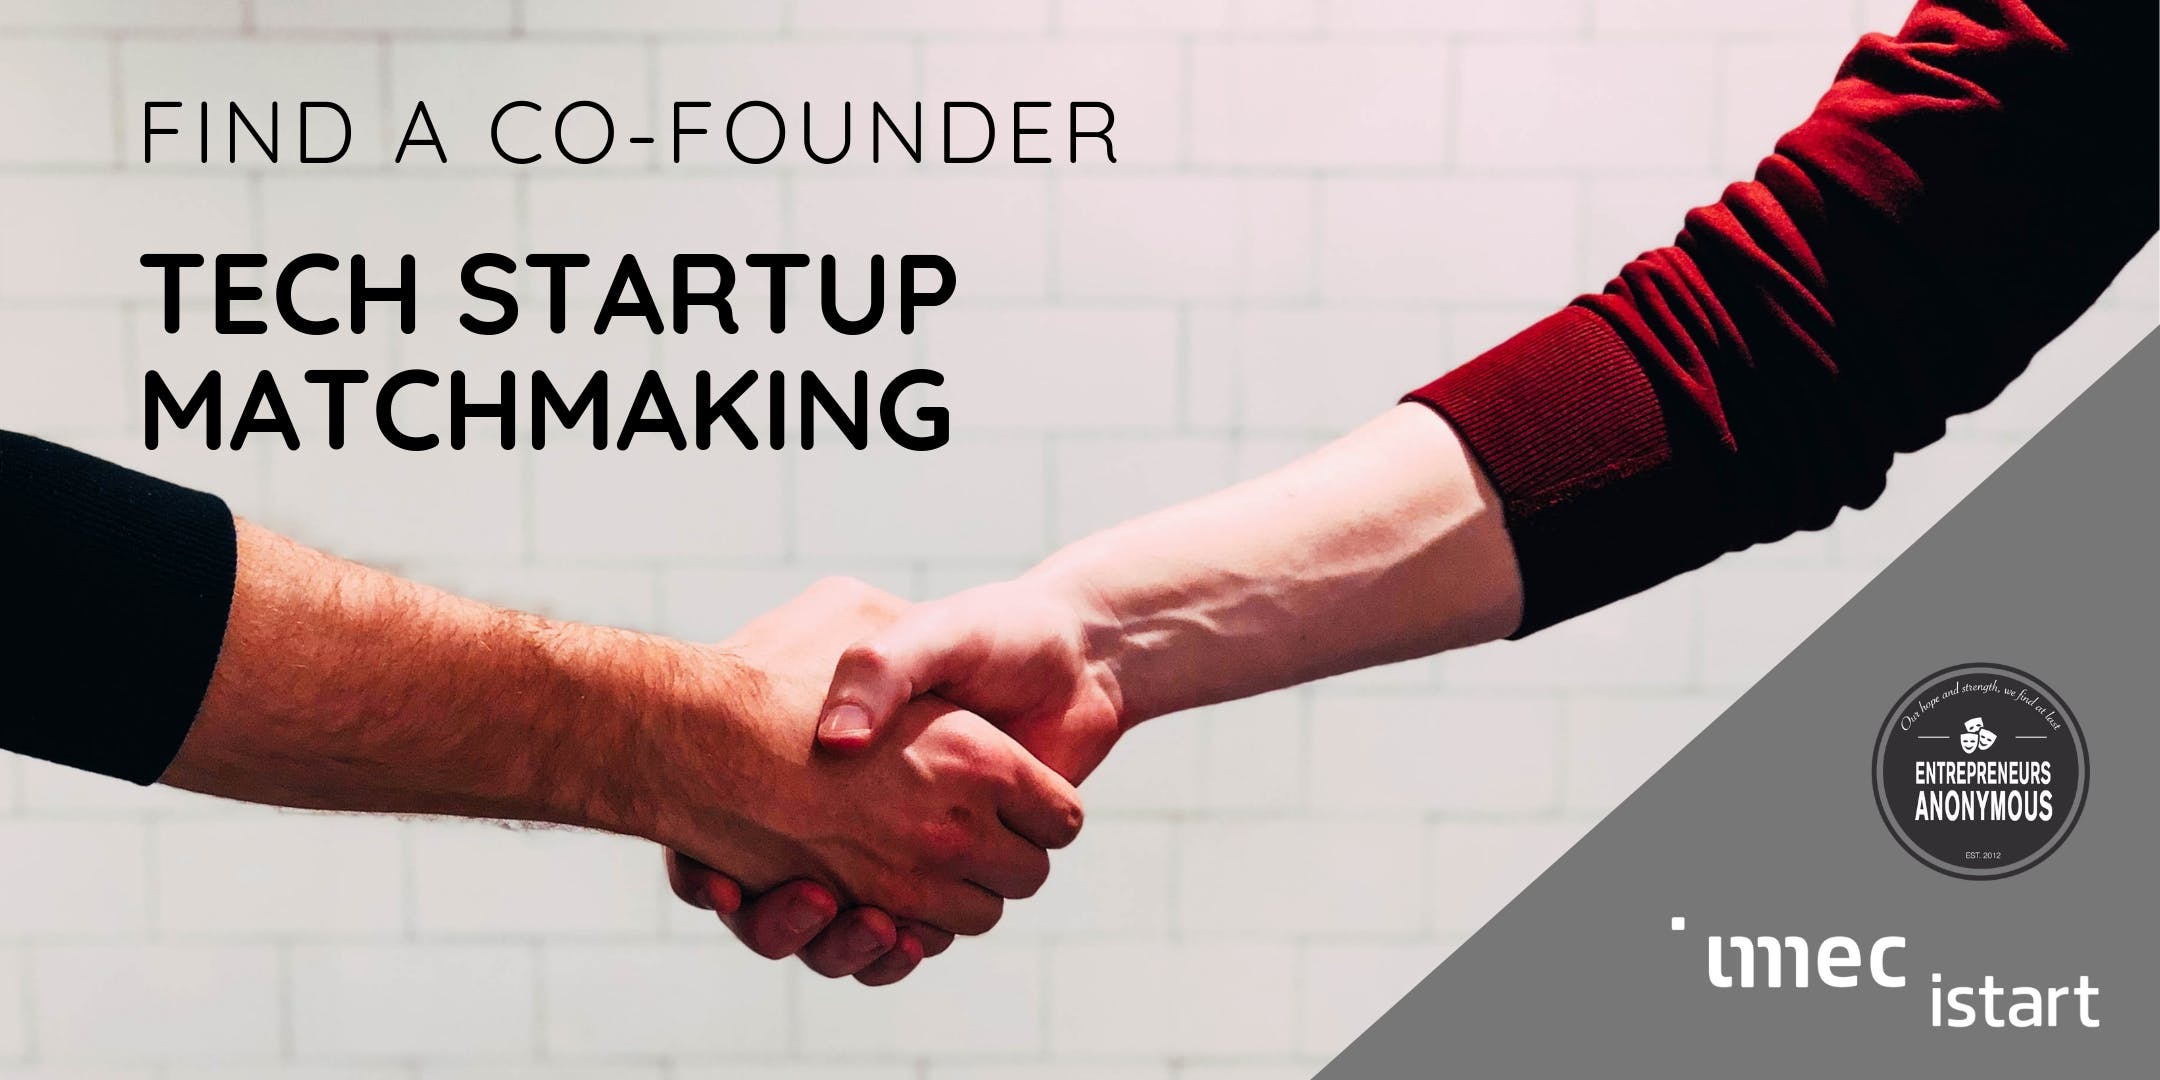 Find A Co-Founder - Tech Startup Matchmaking